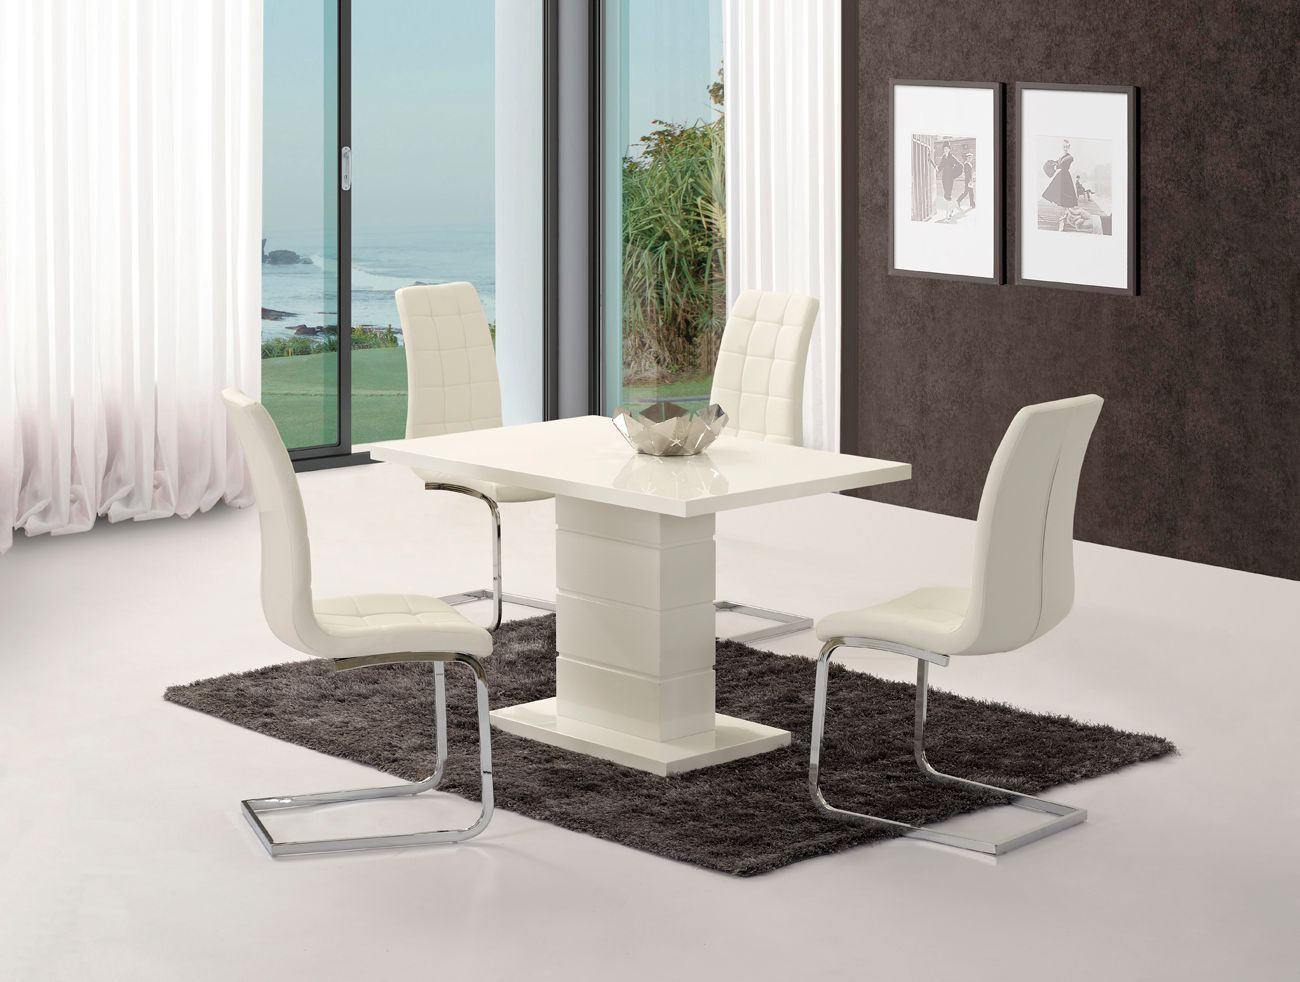 White high gloss dining table set with 6 white chairs for White high gloss dining table